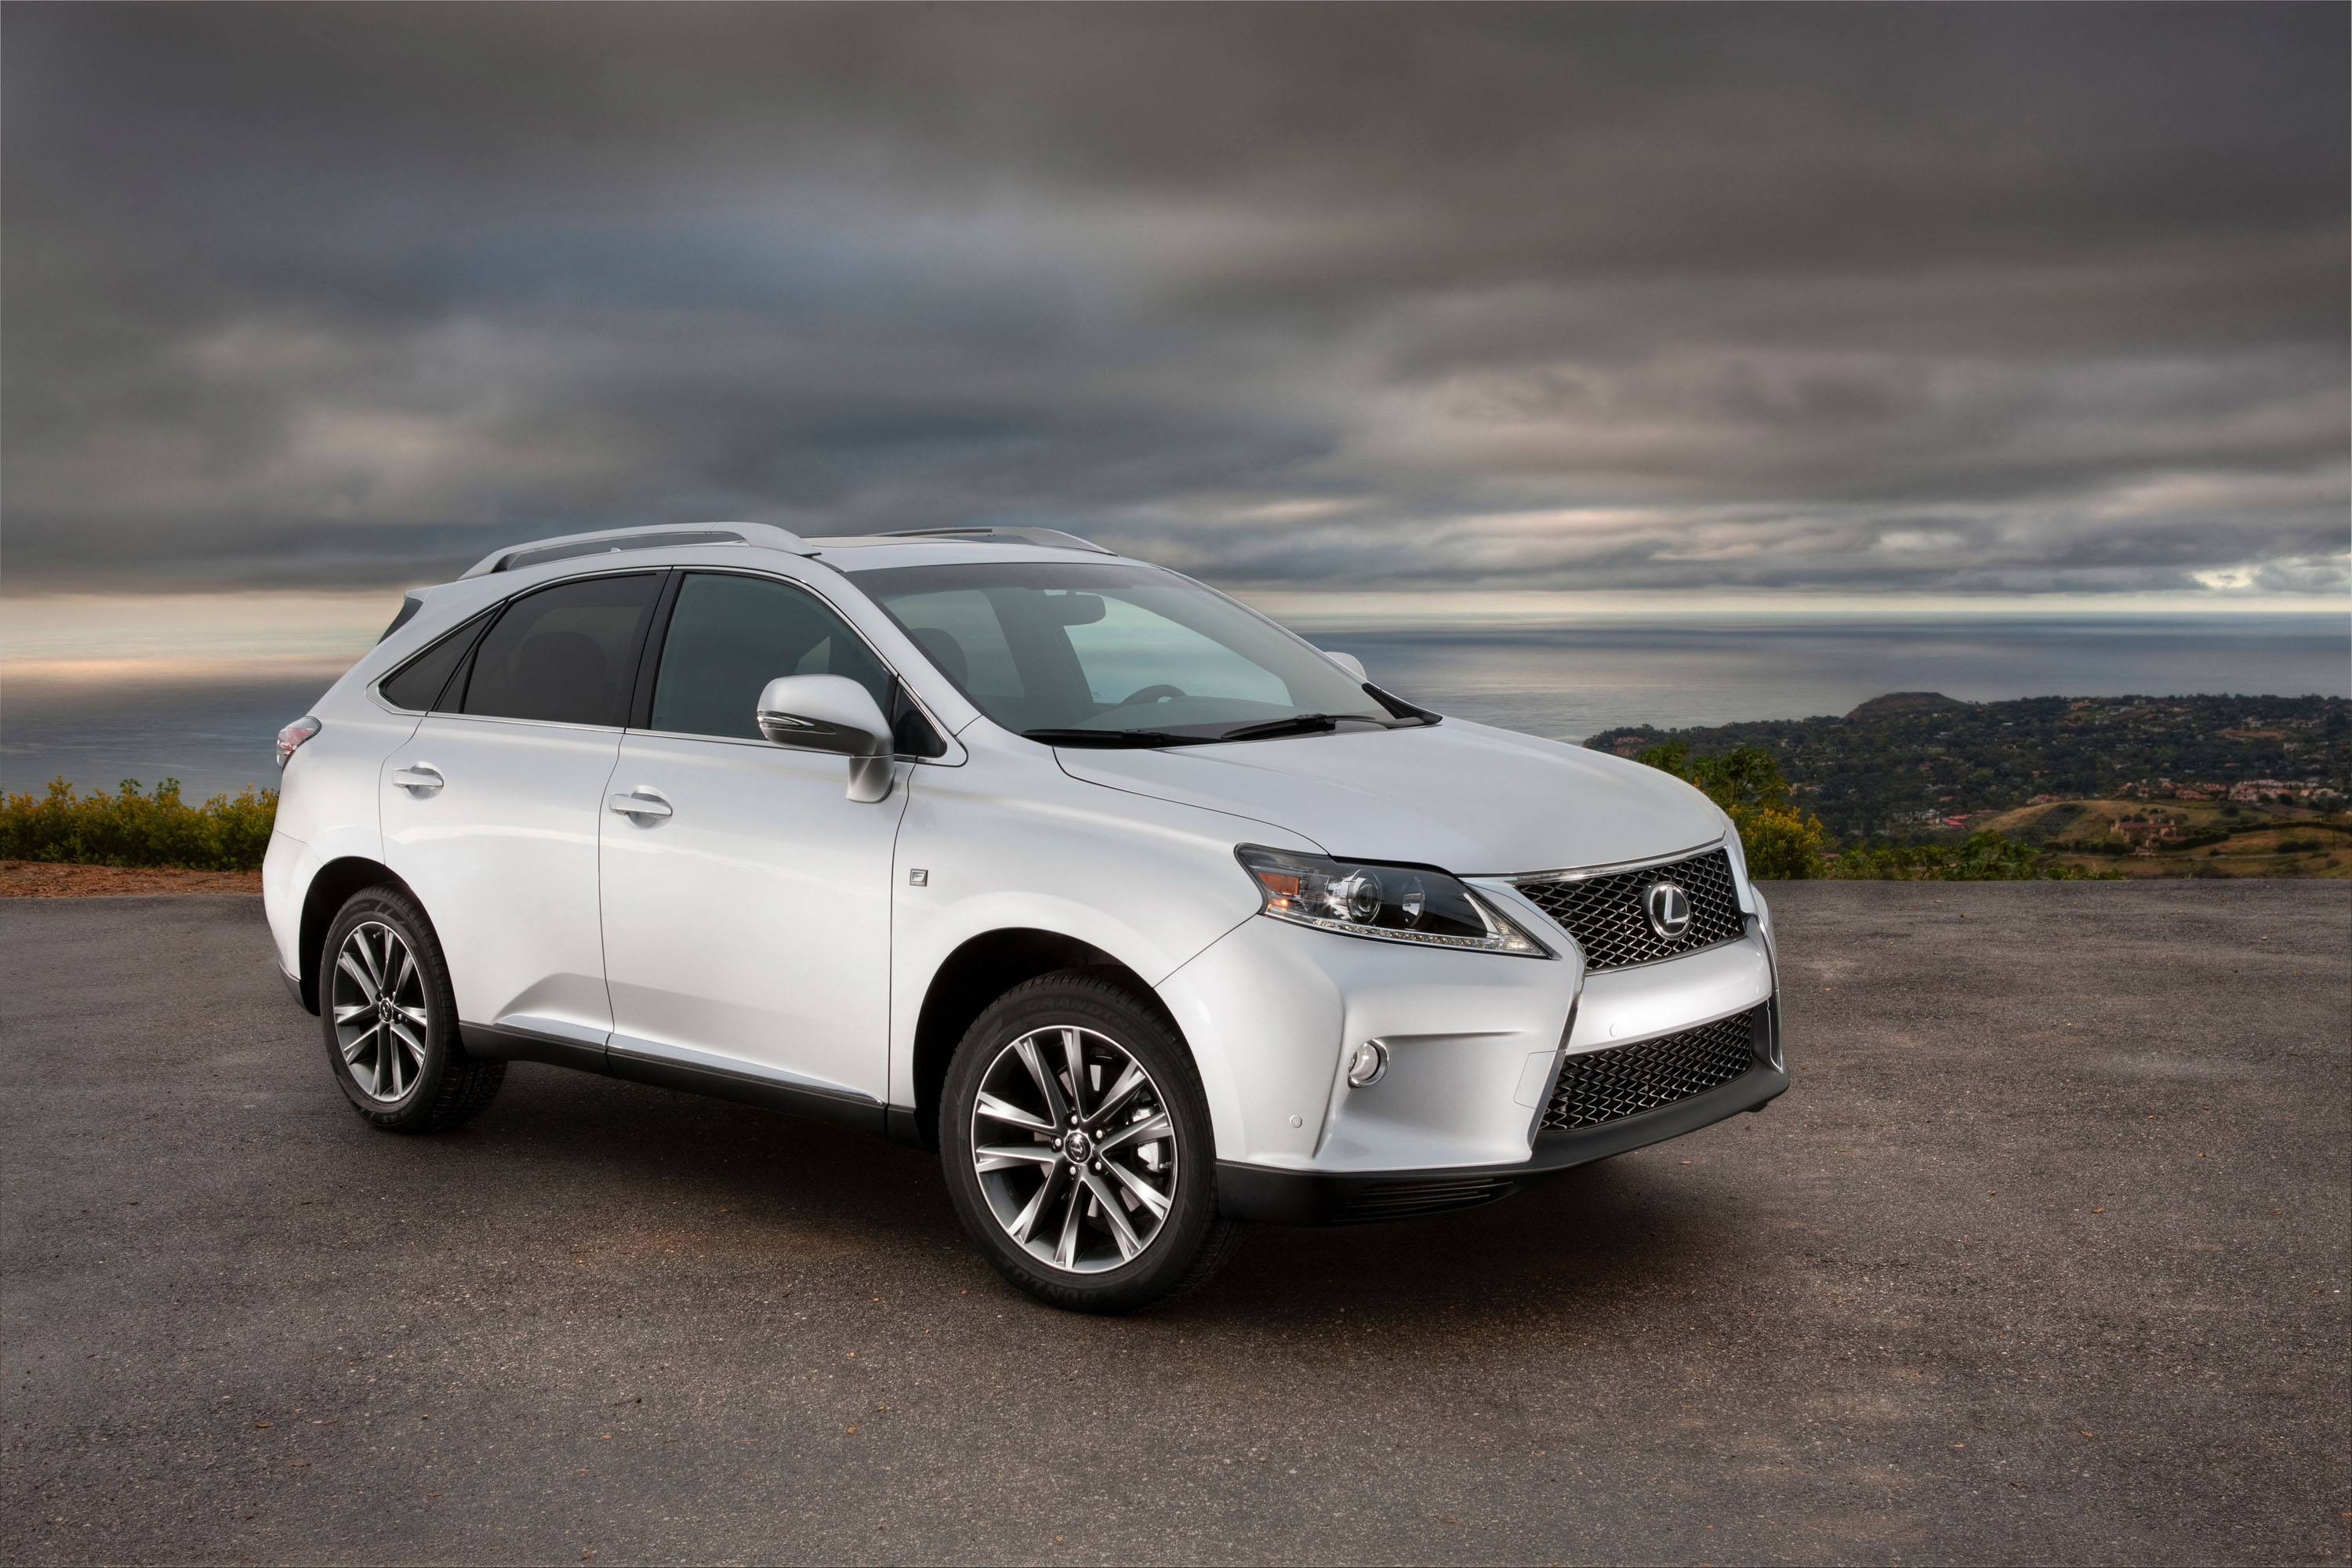 used st f for suv htm fl rx lexus sport augustine sale